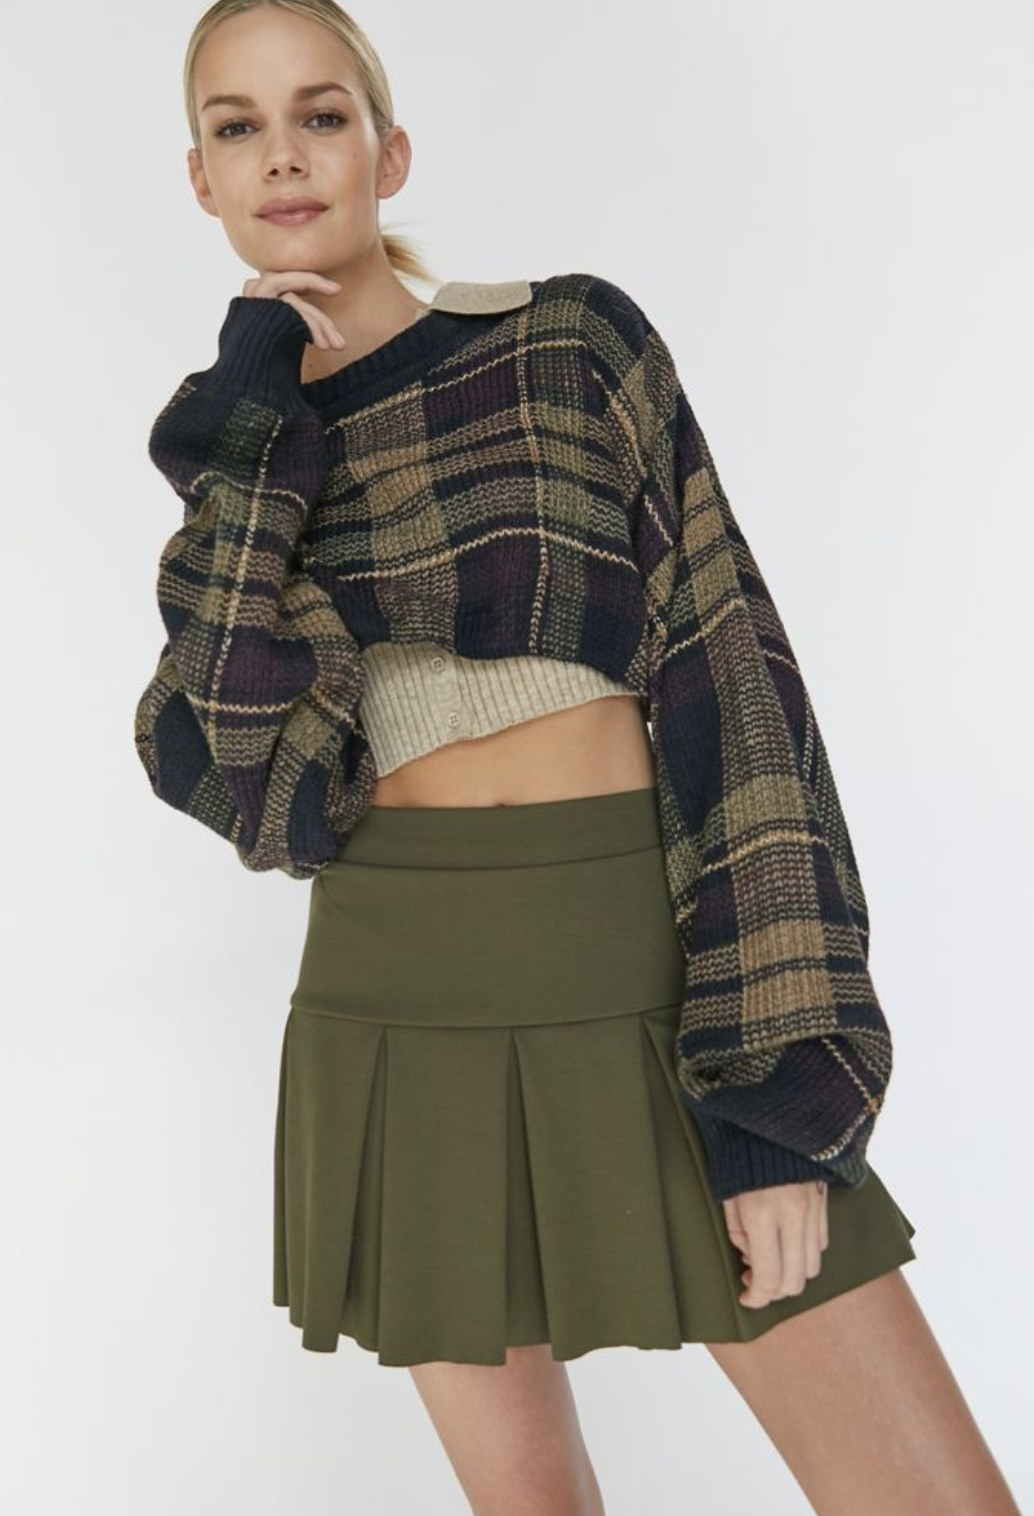 Model is wearing a forest green pleated skirt and a cropped sweater